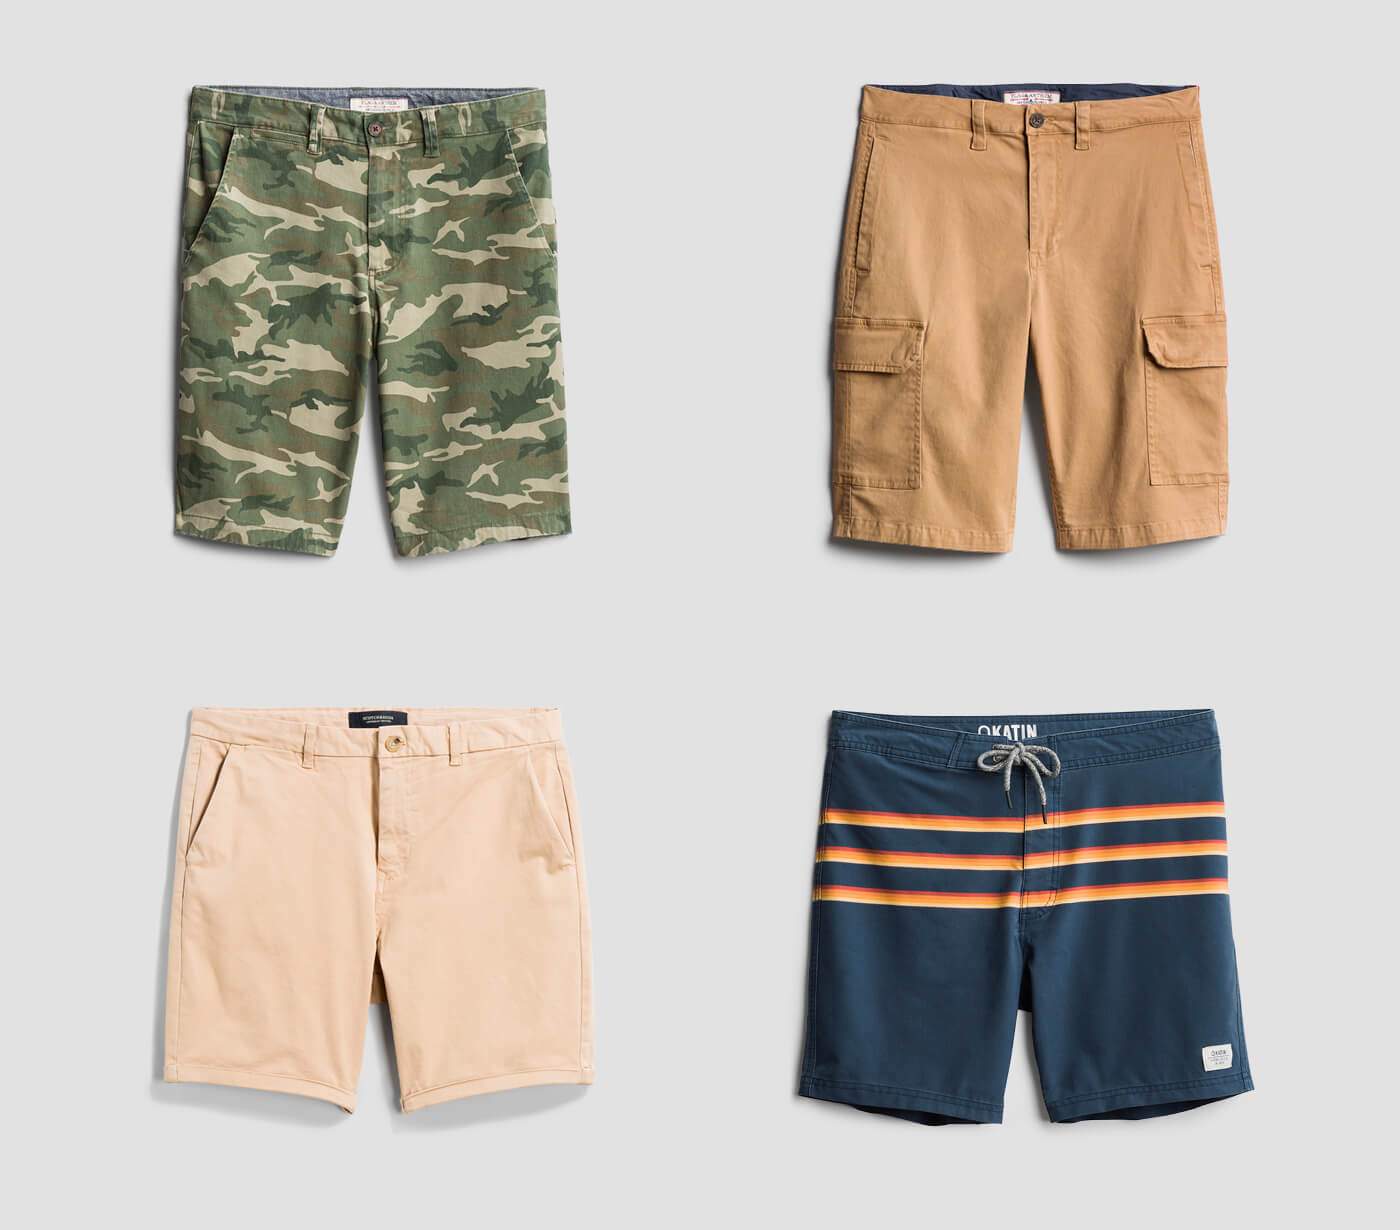 shorts for men's festival outfits